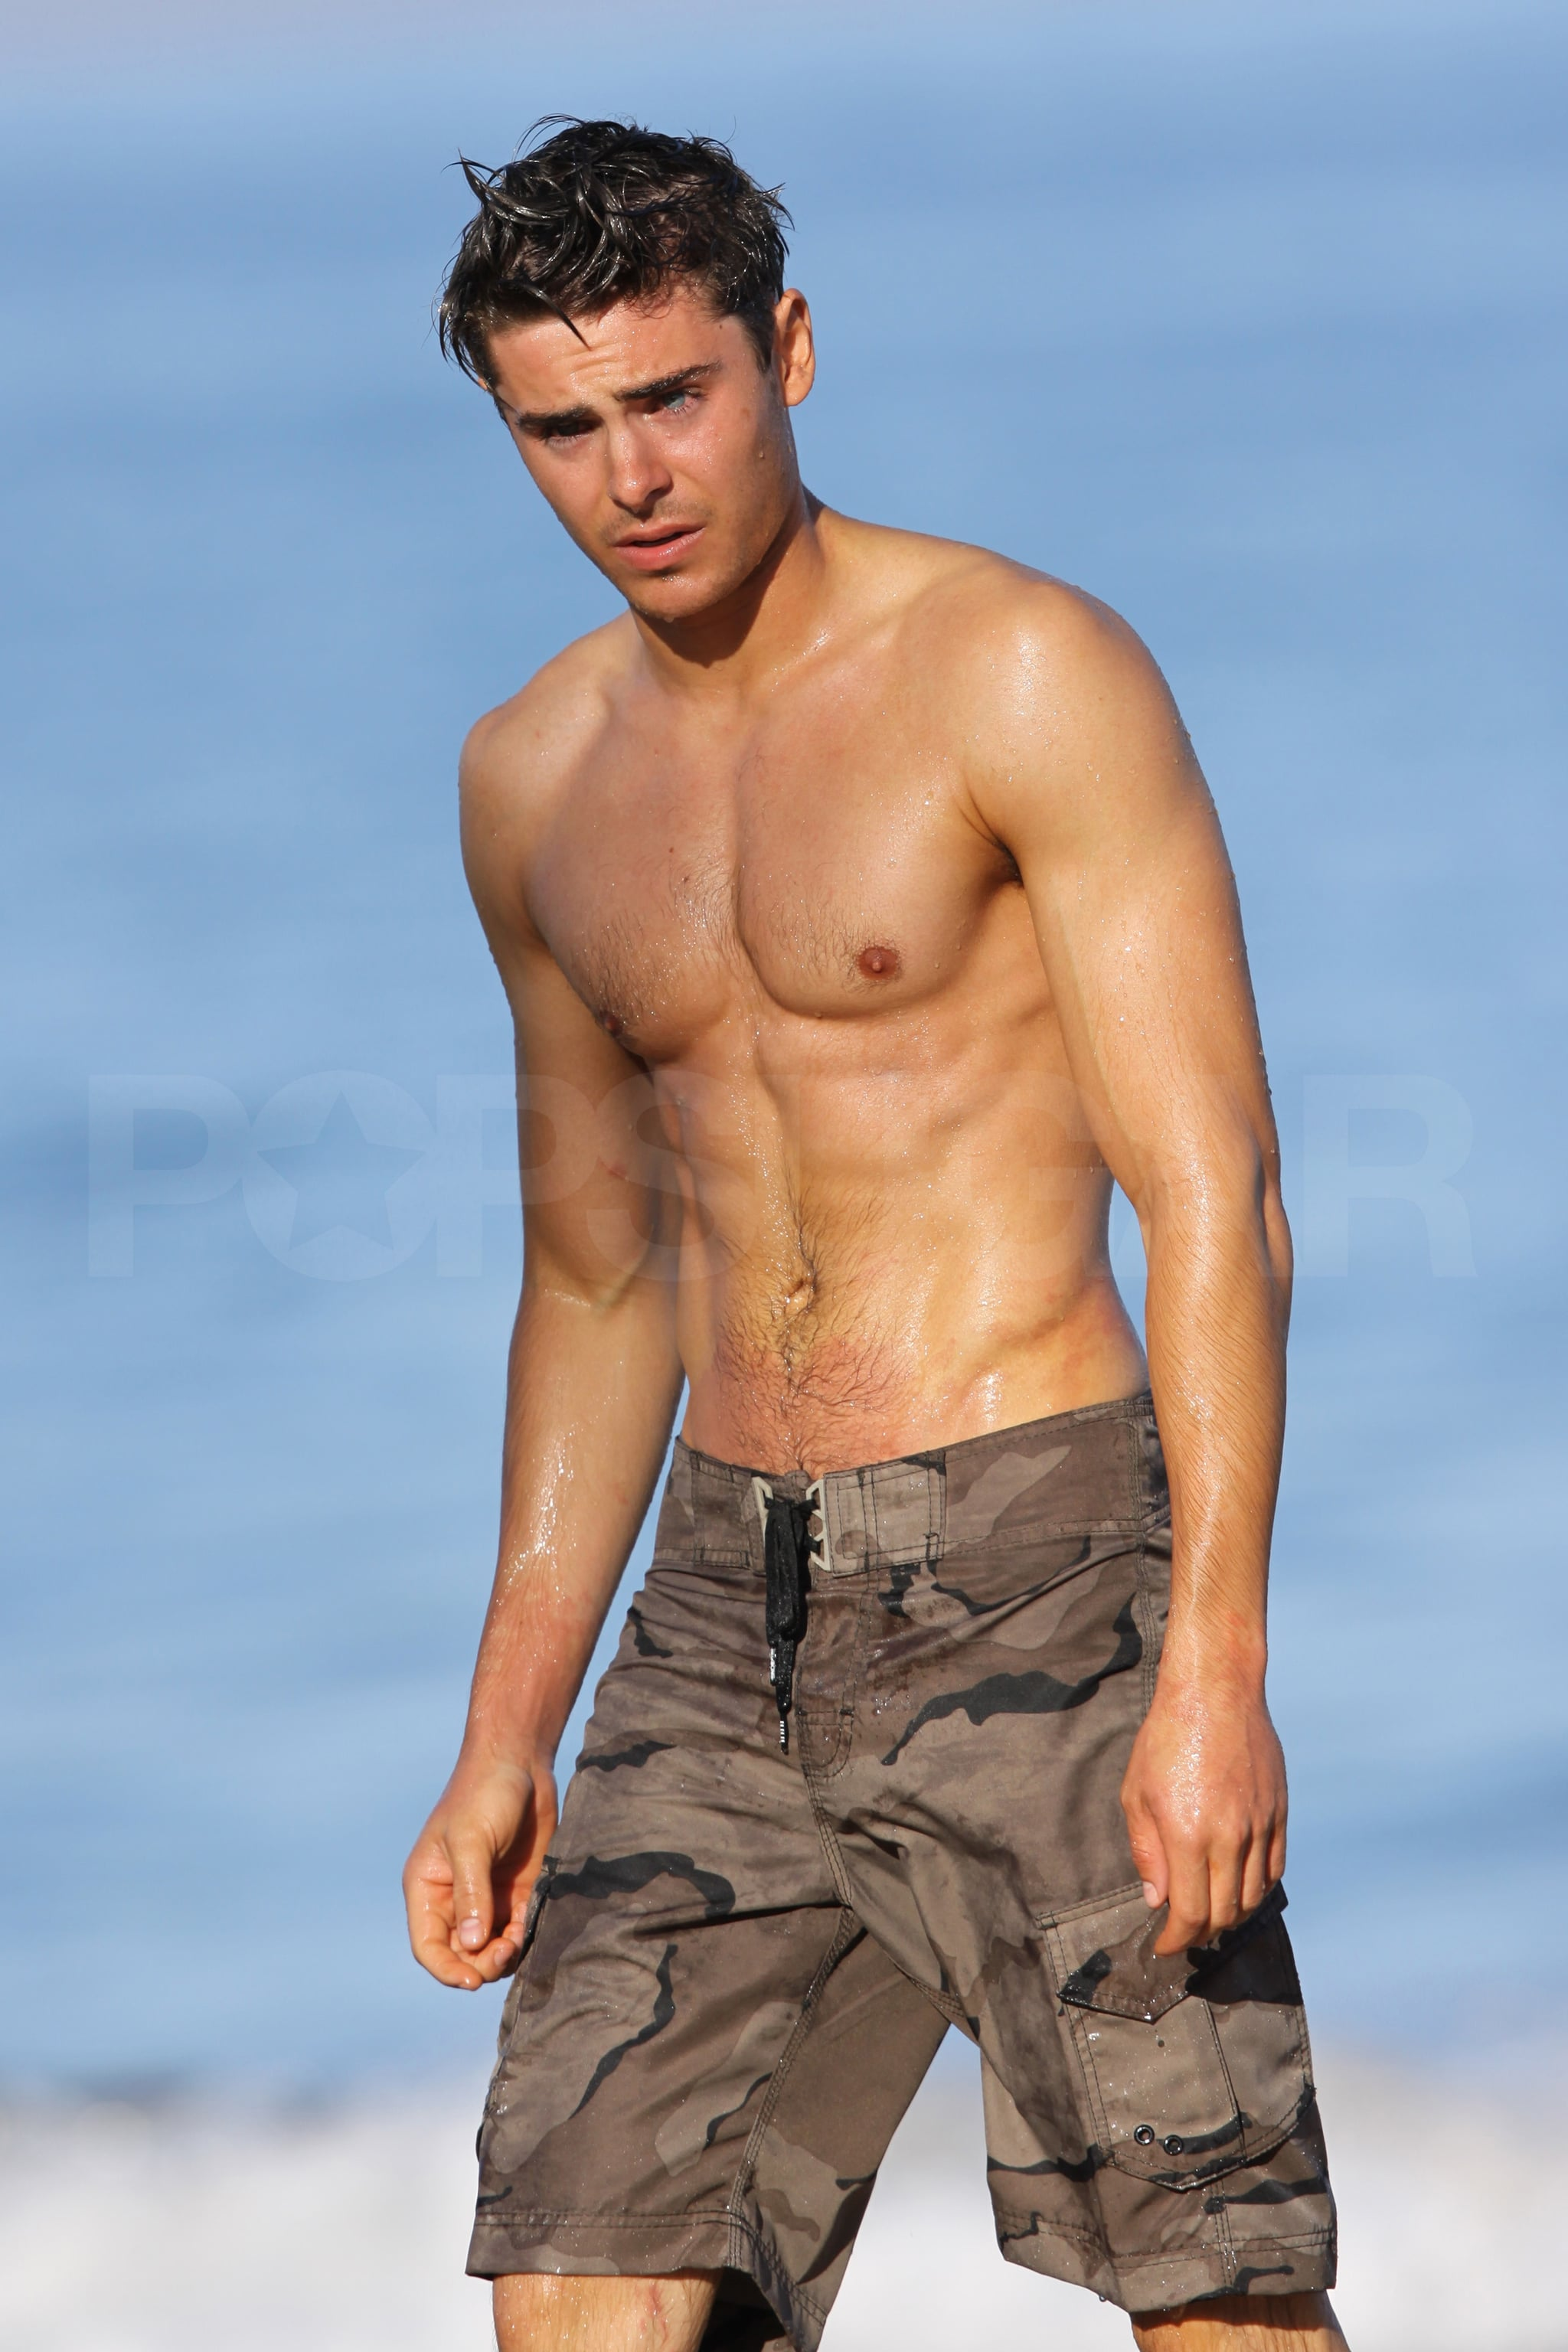 Pictures Of Zac Efron Looking Hot Shirtless Popsugar Celebrity